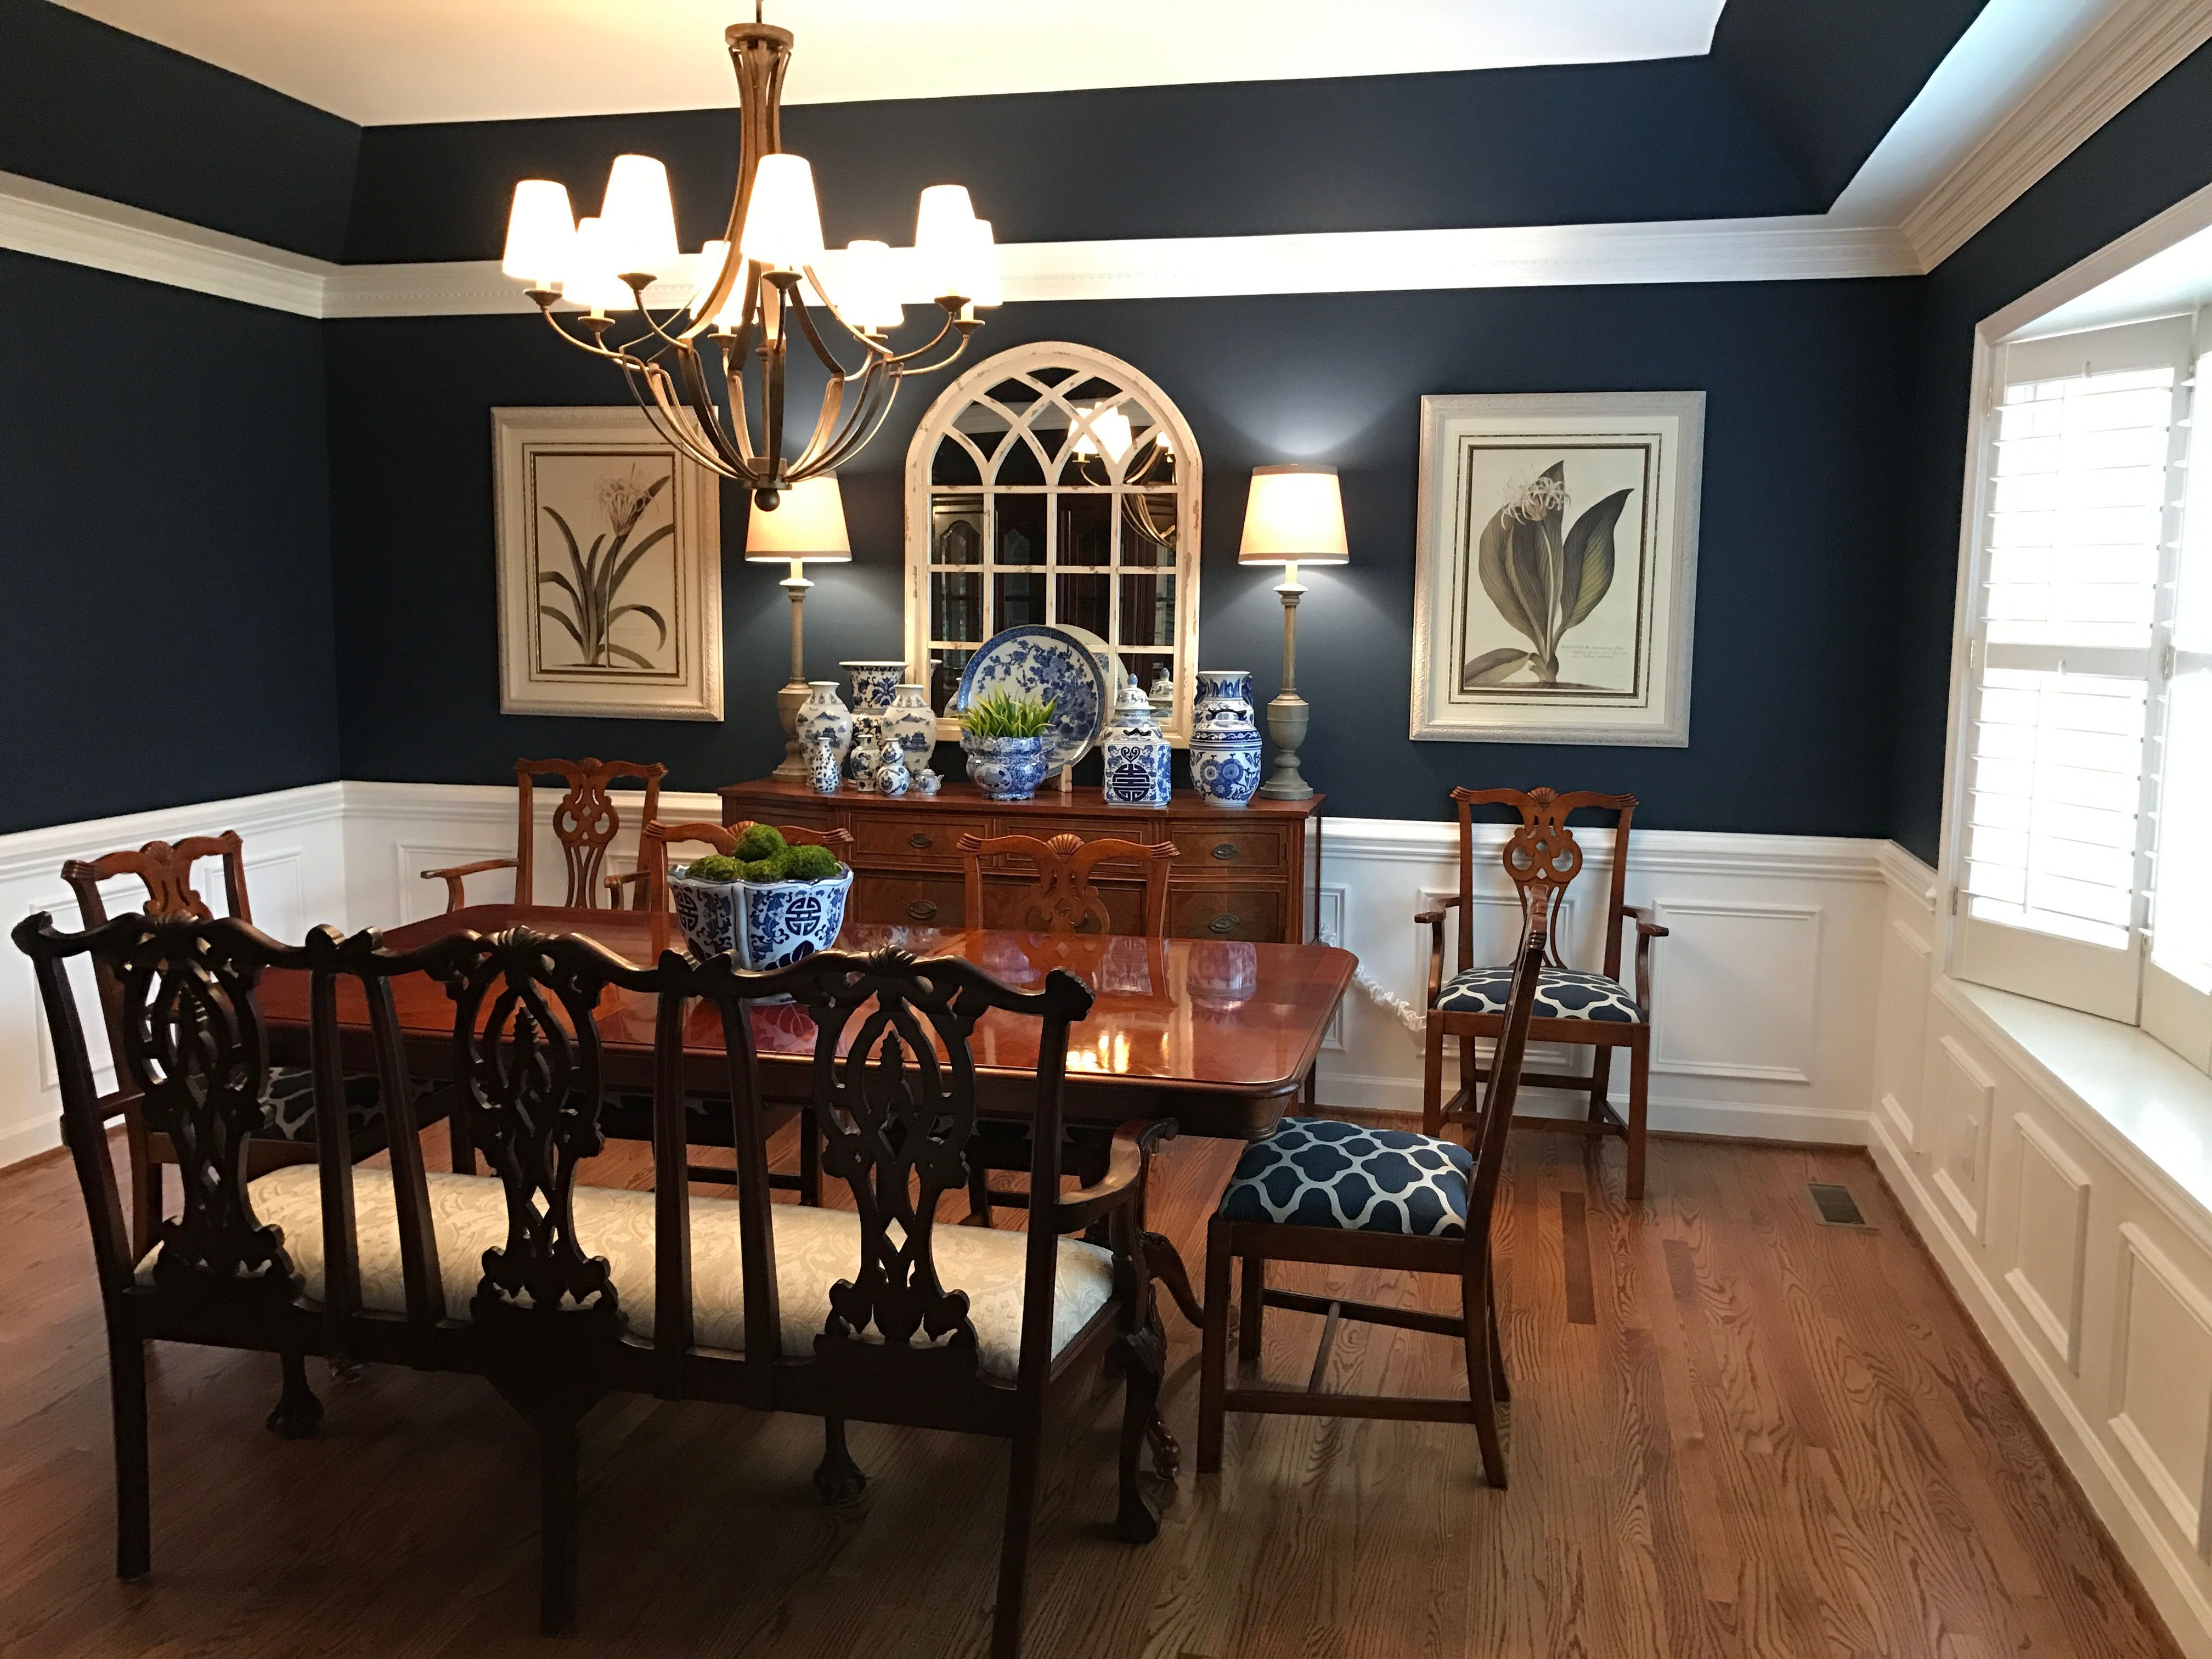 My Dining Room With Sherwin Williams Naval Paint Color Blue And White Pottery Antique Triple Settee